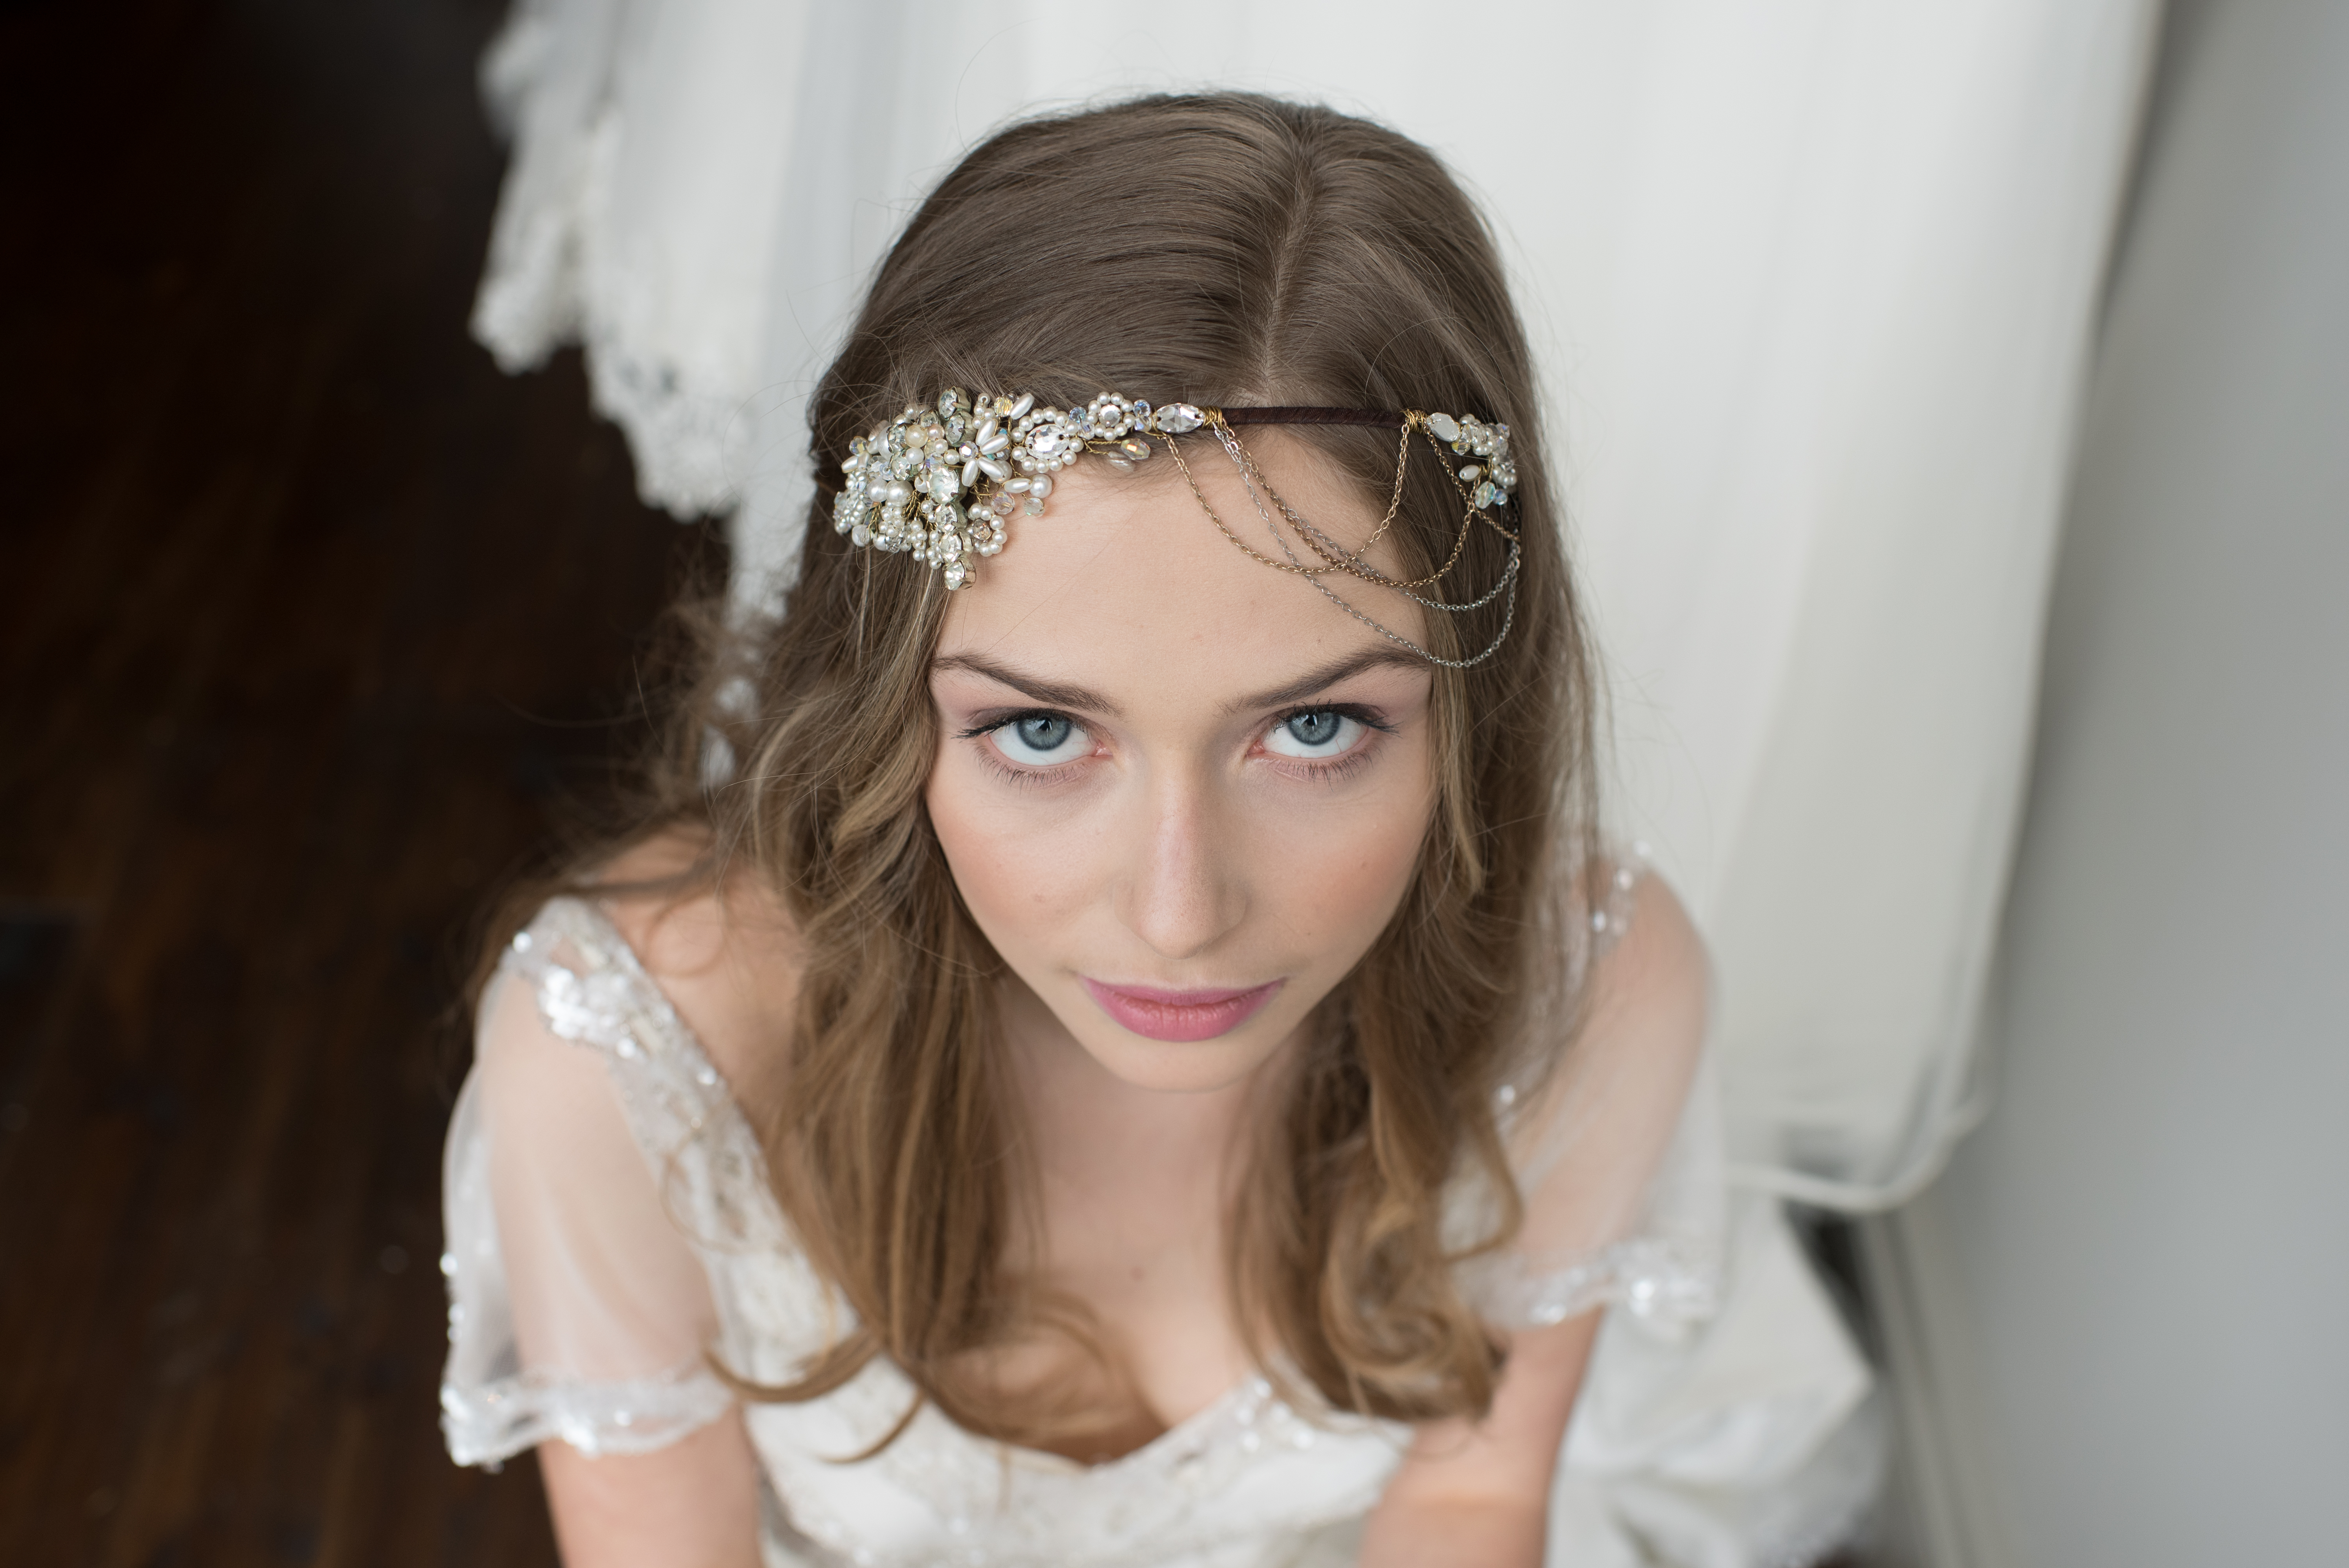 Following On From Our Article Published Today In Wedding Daily We Though D Shout About Fabulous New 2017 Bridal Hair Vines Collection Just One More